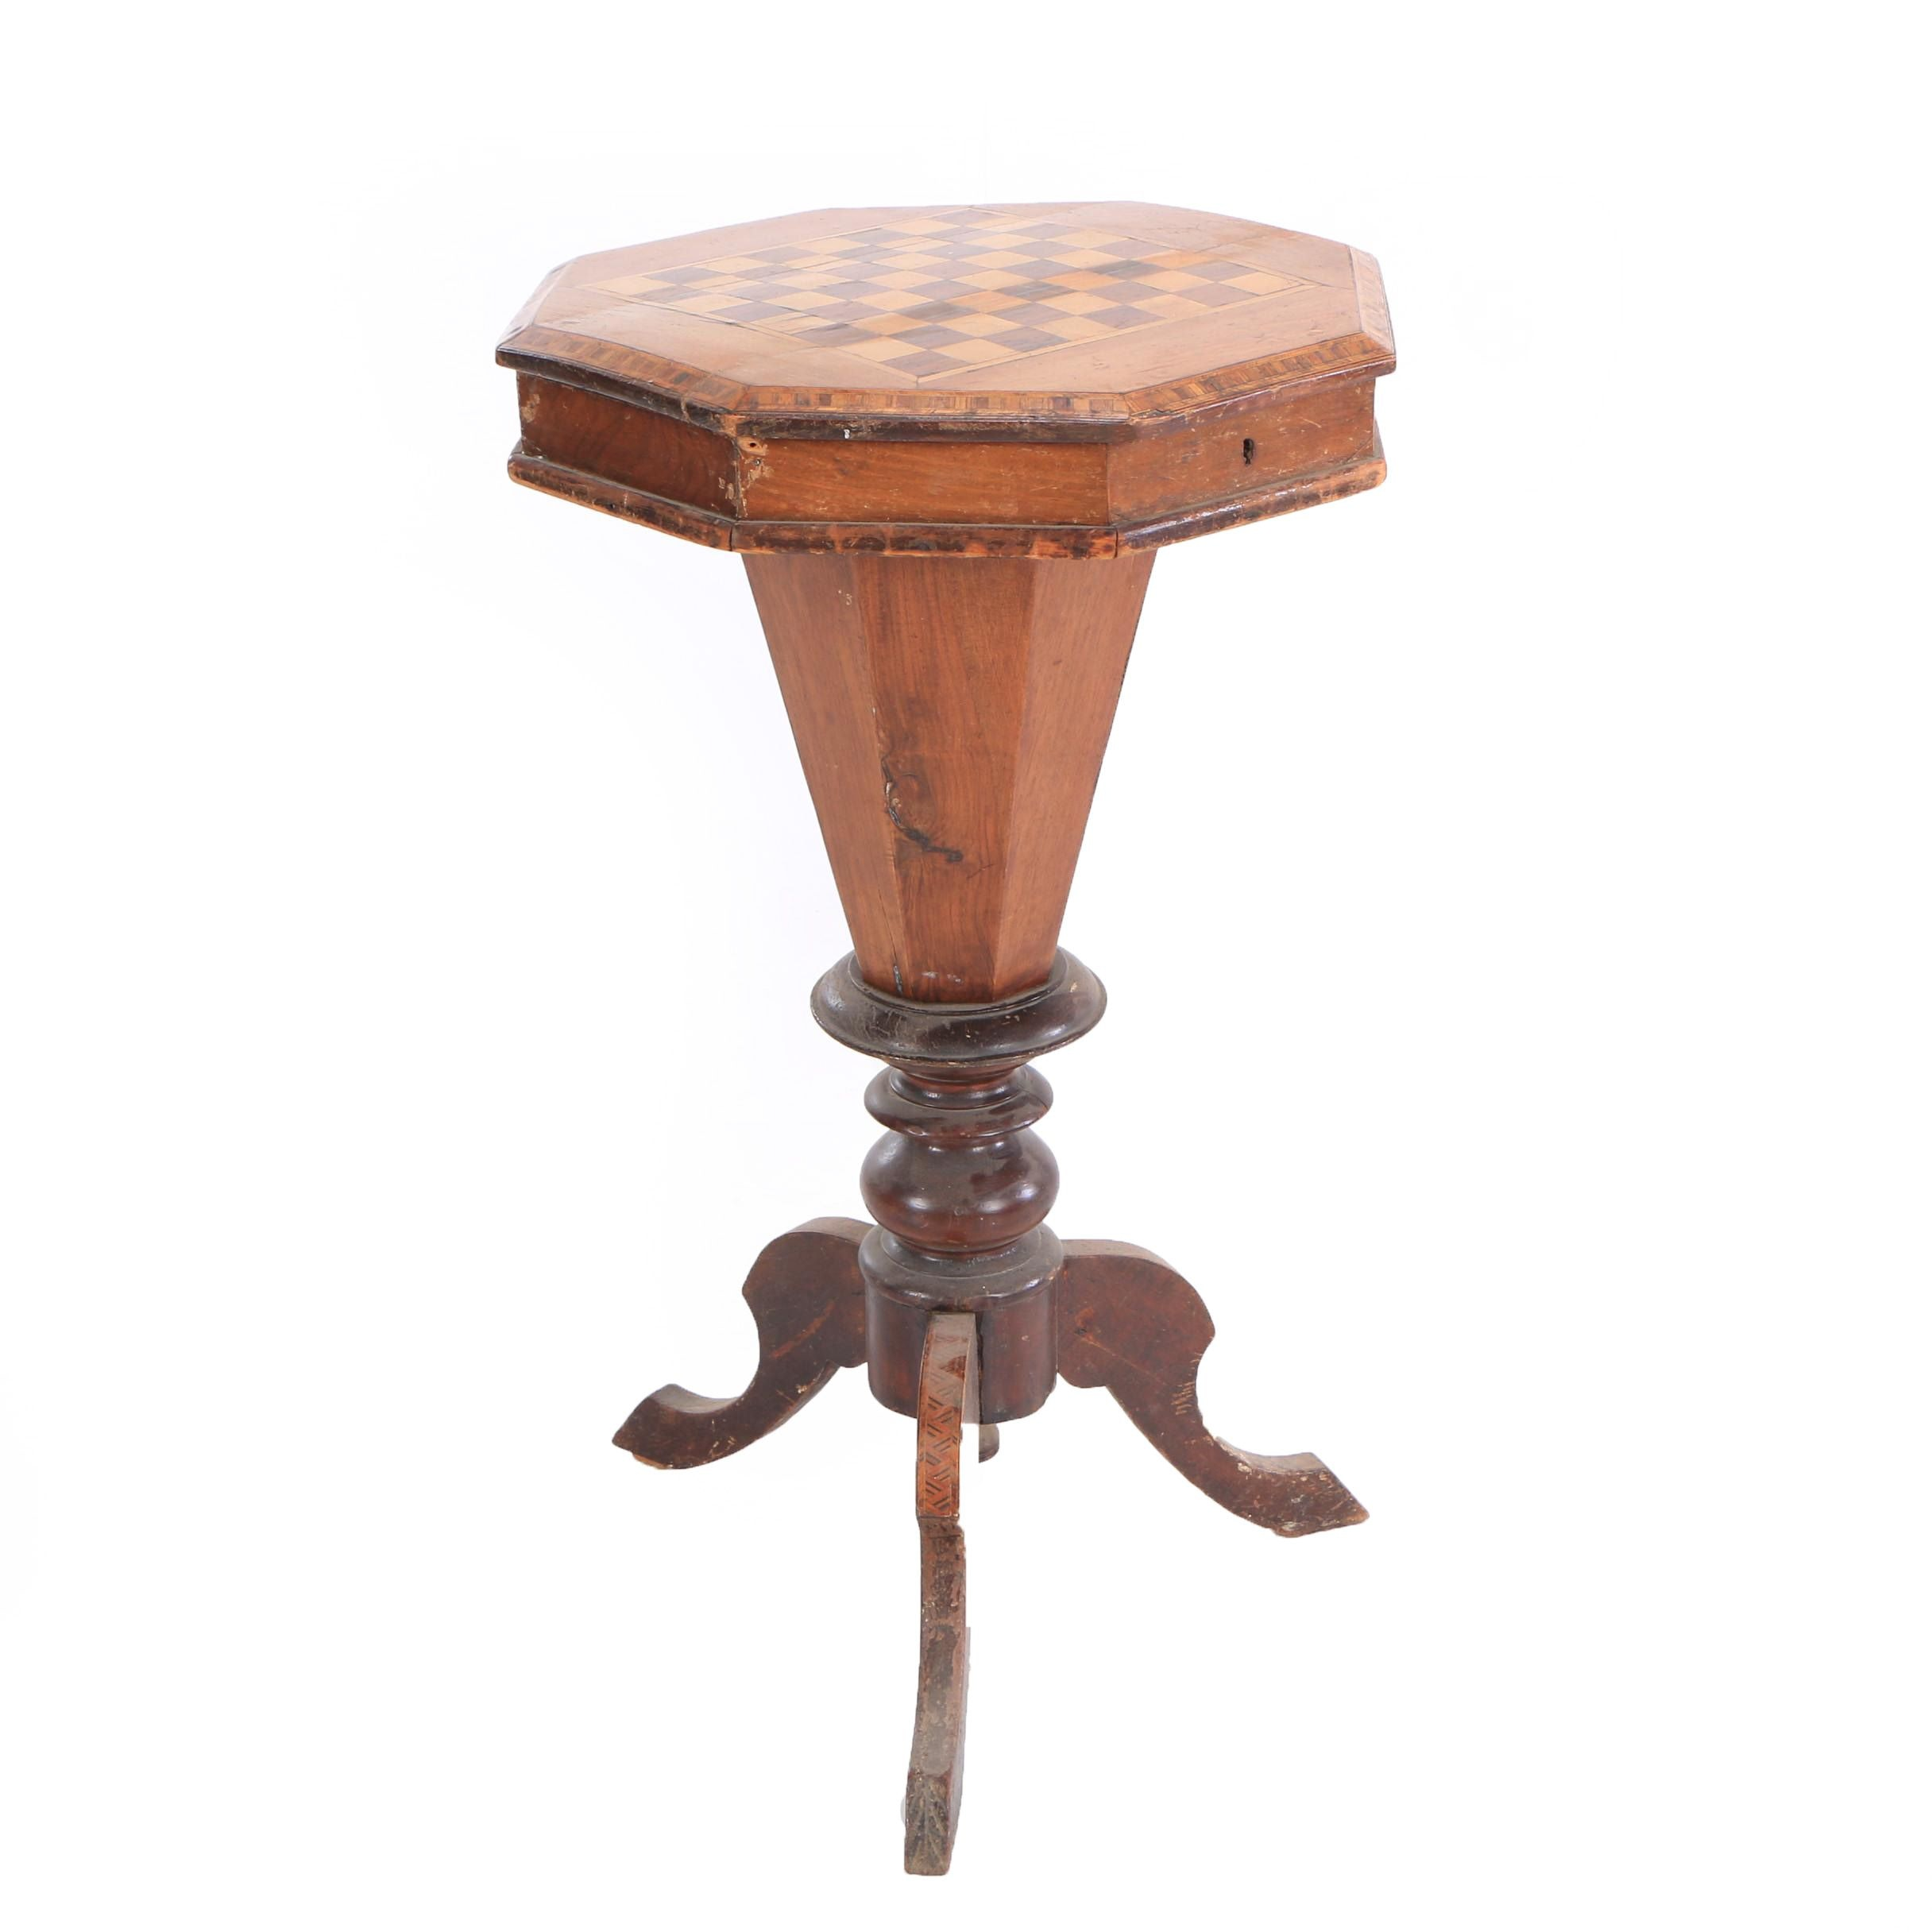 Victorian Sewing Table with Chess Board Top